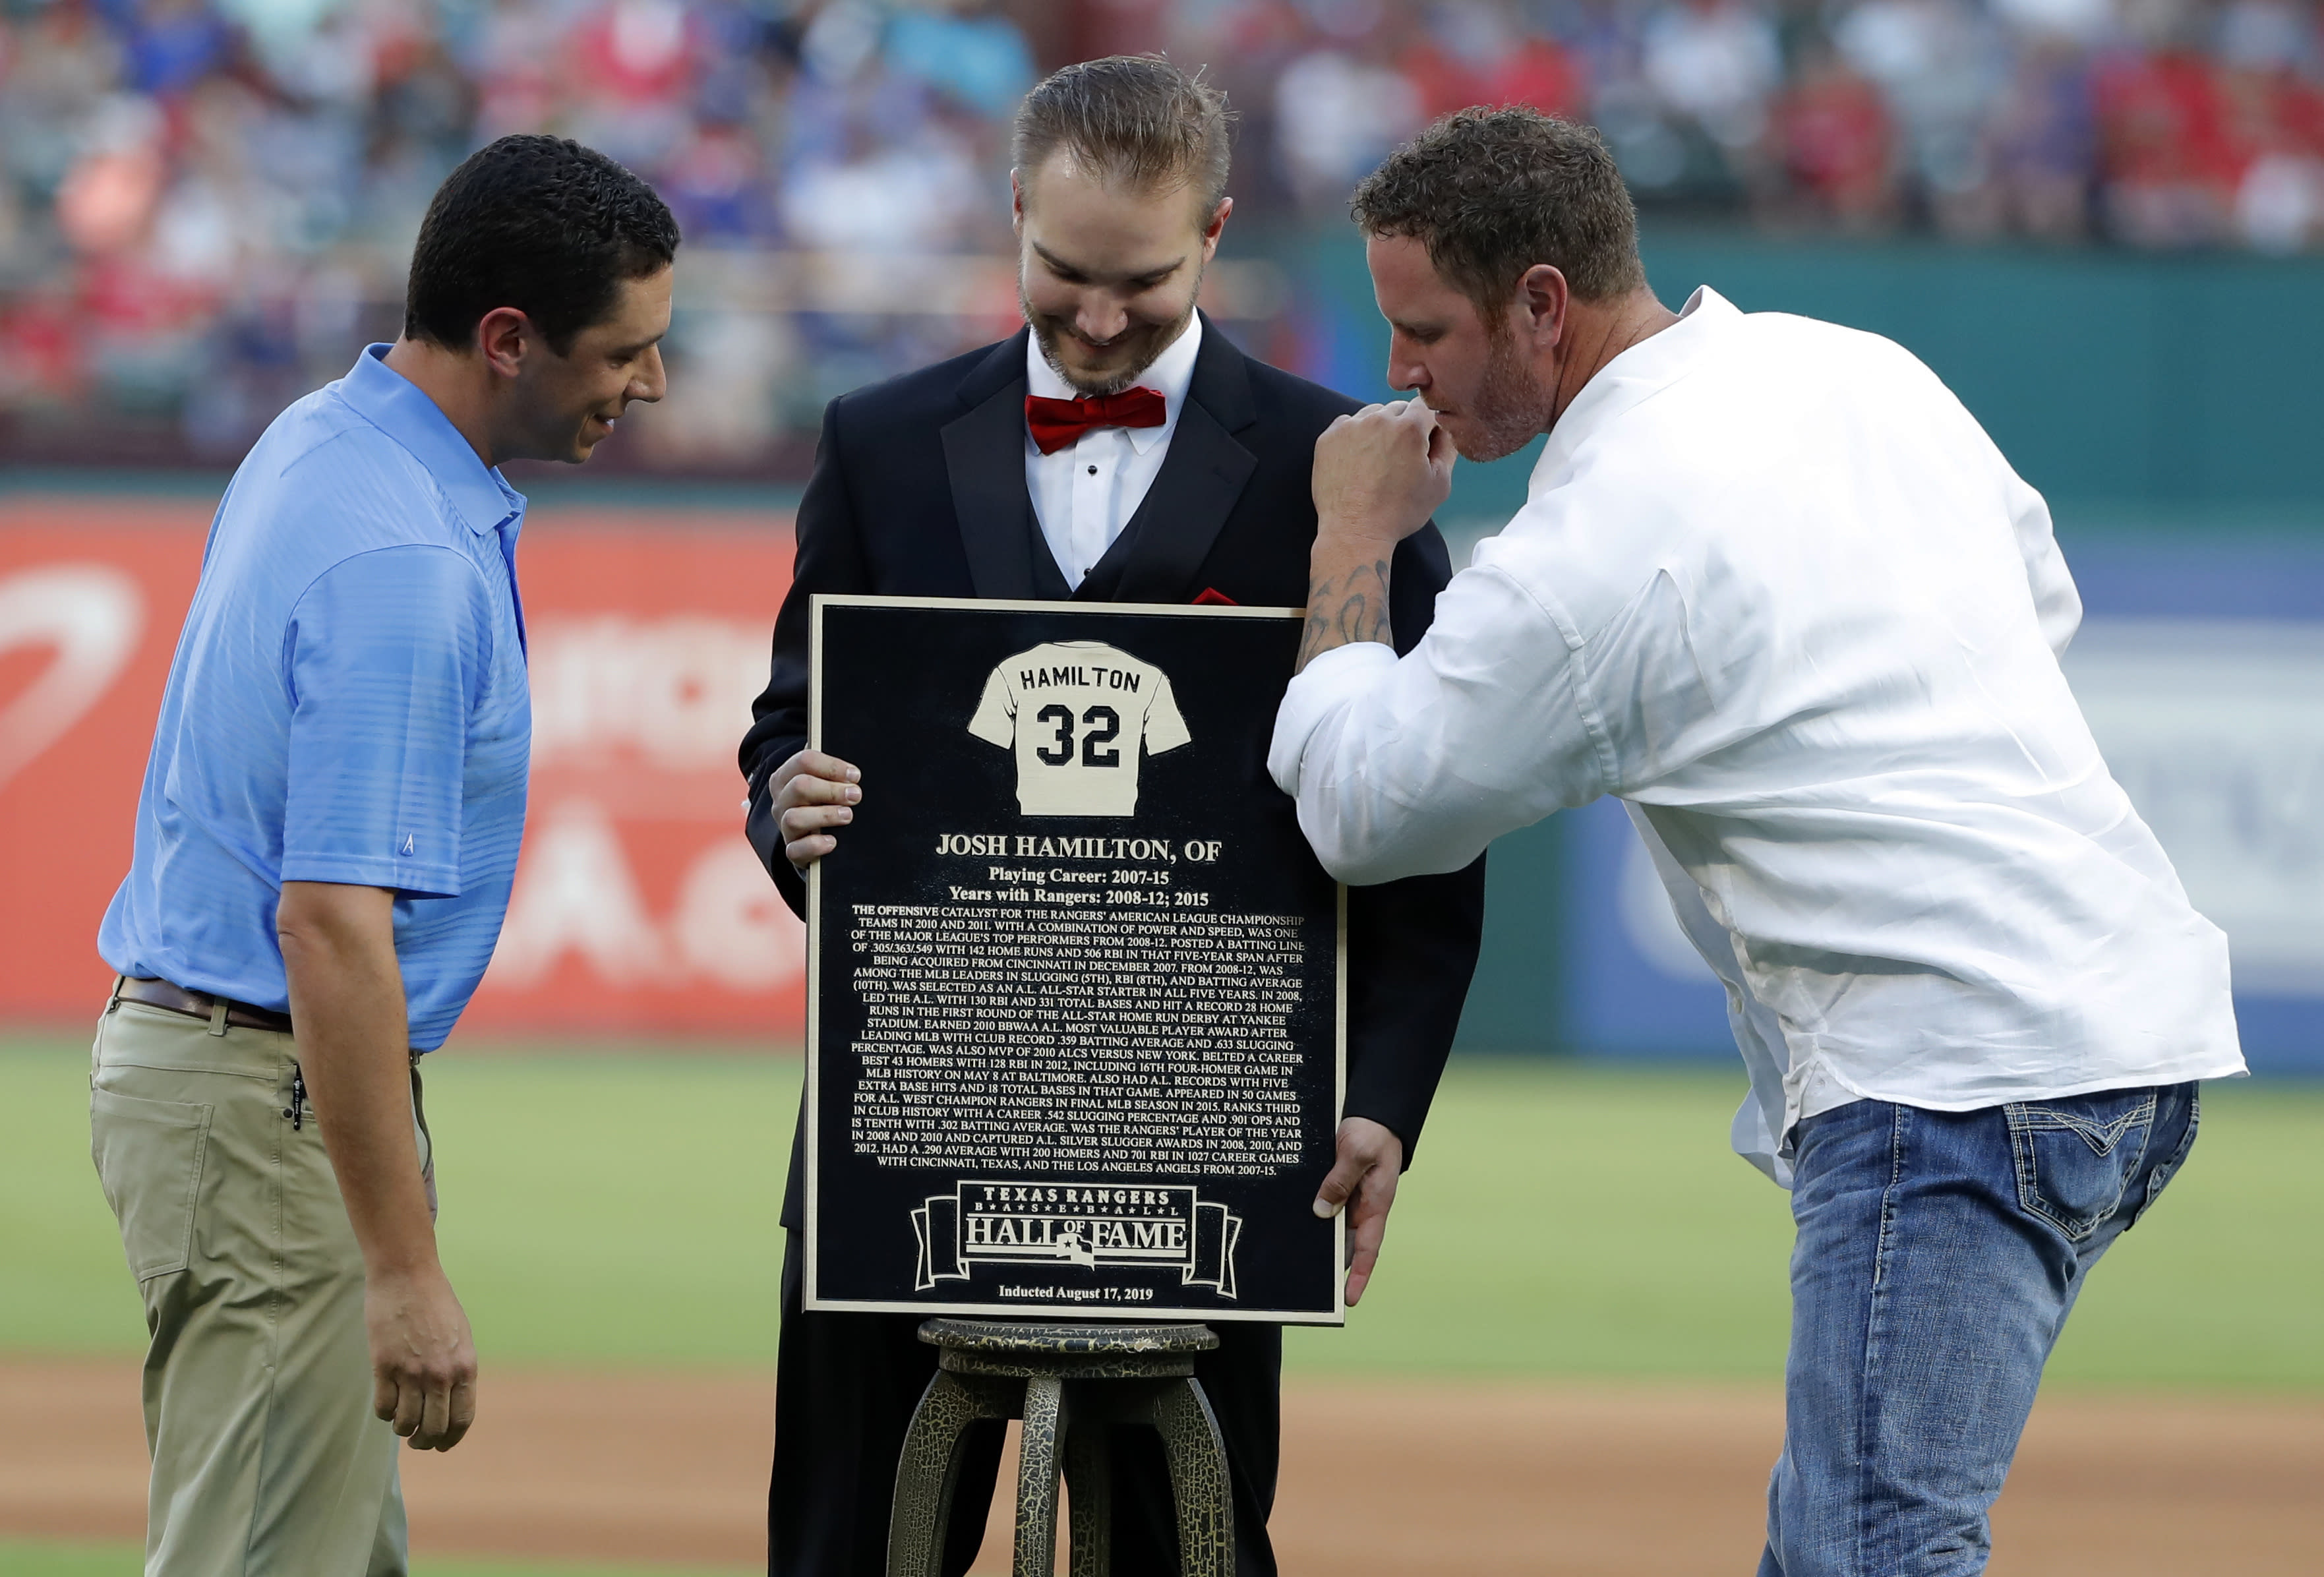 Texas Rangers general manager Jon Daniels smiles as former player Josh Hamilton, right, pretends to put a shine on a plaque presented to him during a club Hall of Fame ceremony before the team's baseball game against the Minnesota Twins in Arlington, Texas, Saturday, Aug. 17, 2019. (AP Photo/Tony Gutierrez)